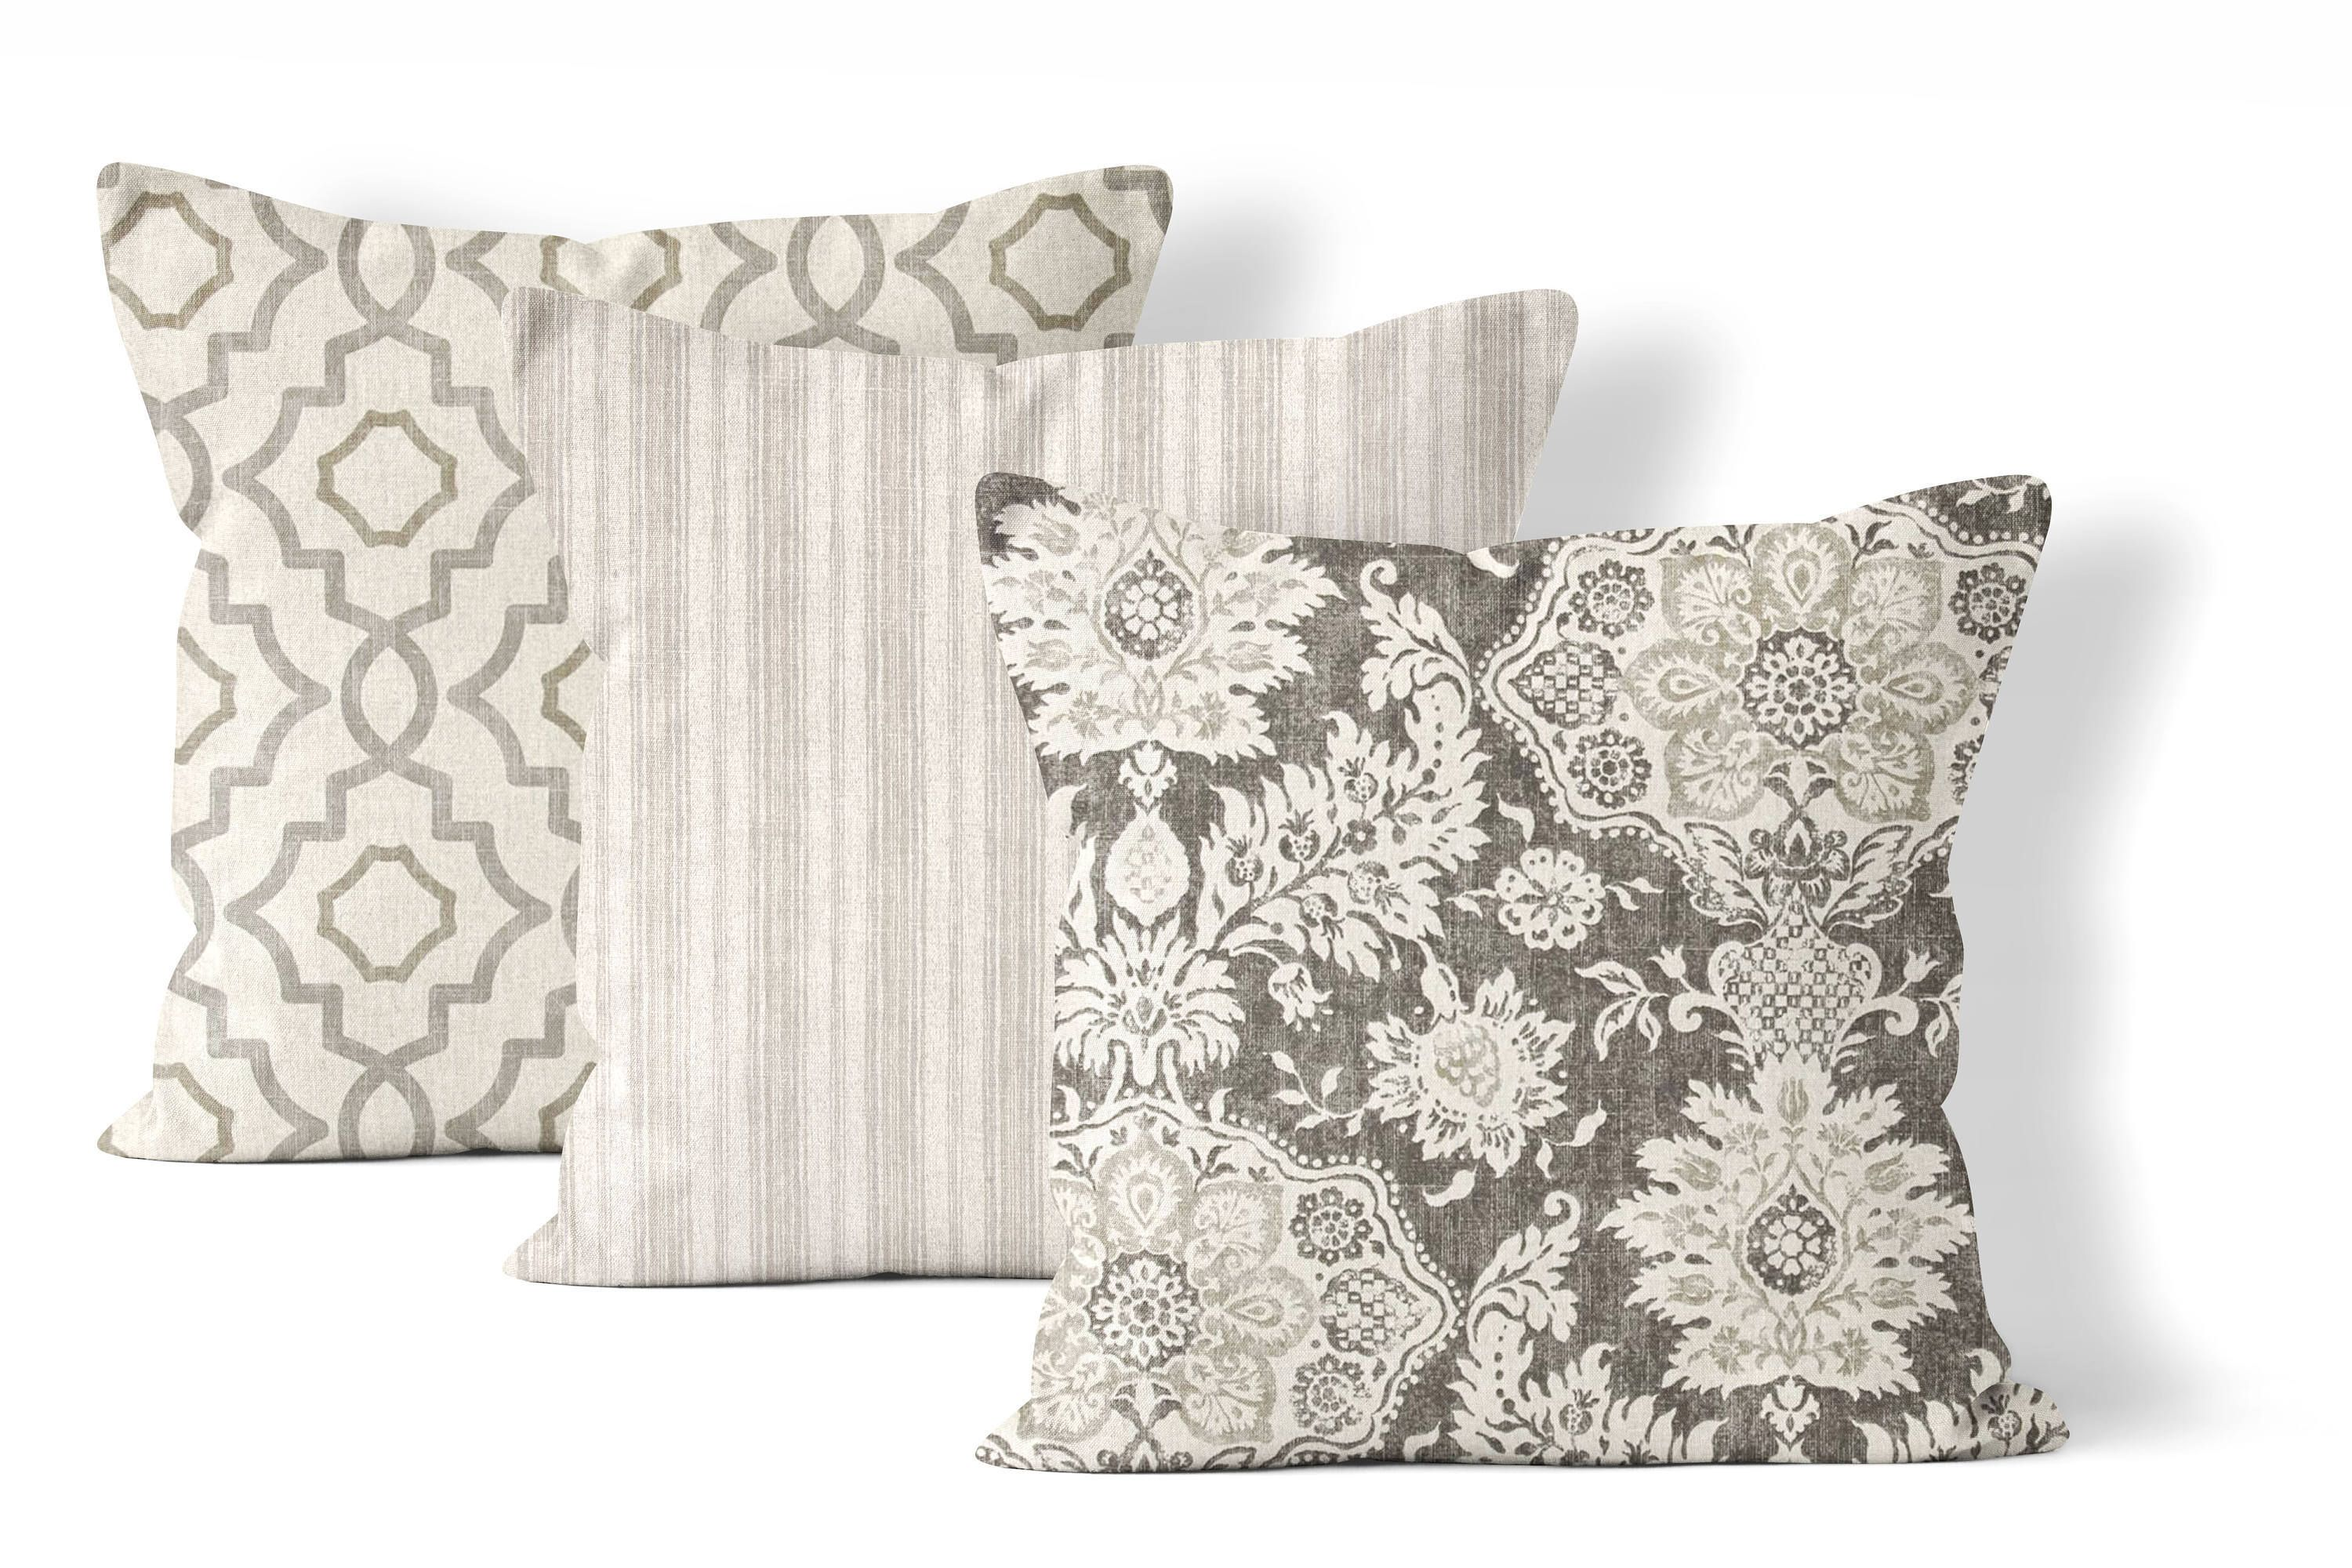 Matching Throw Pillow Set Large Pillow Covers 24x24 In Neutral